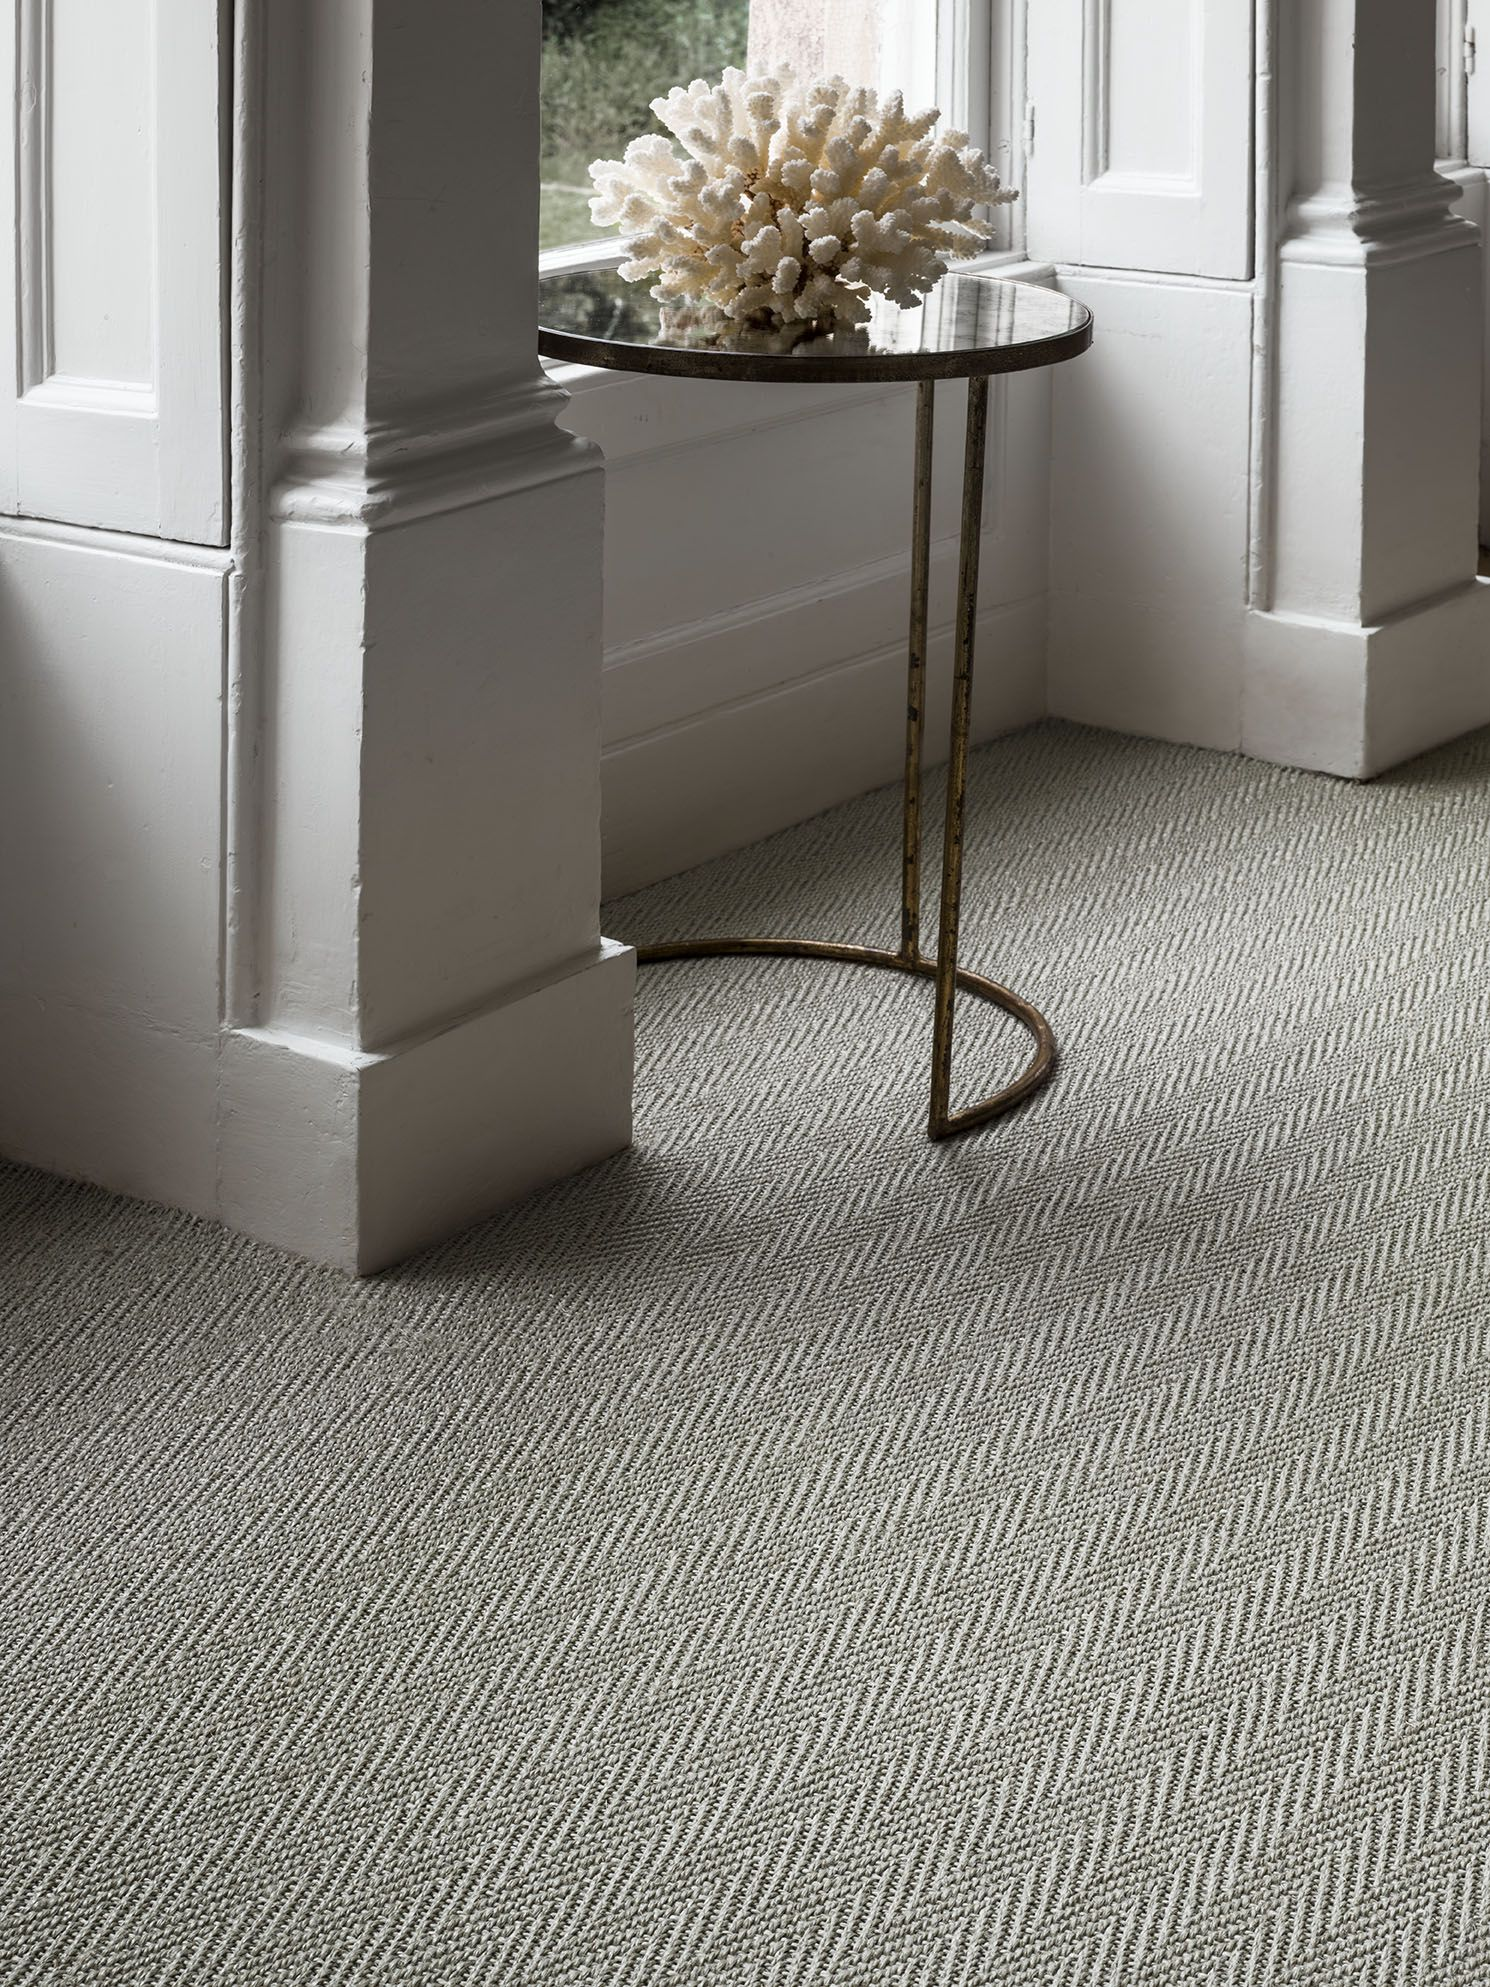 Sisal Harmony Herringbone In Elegant Iron Whereinspirationbegins